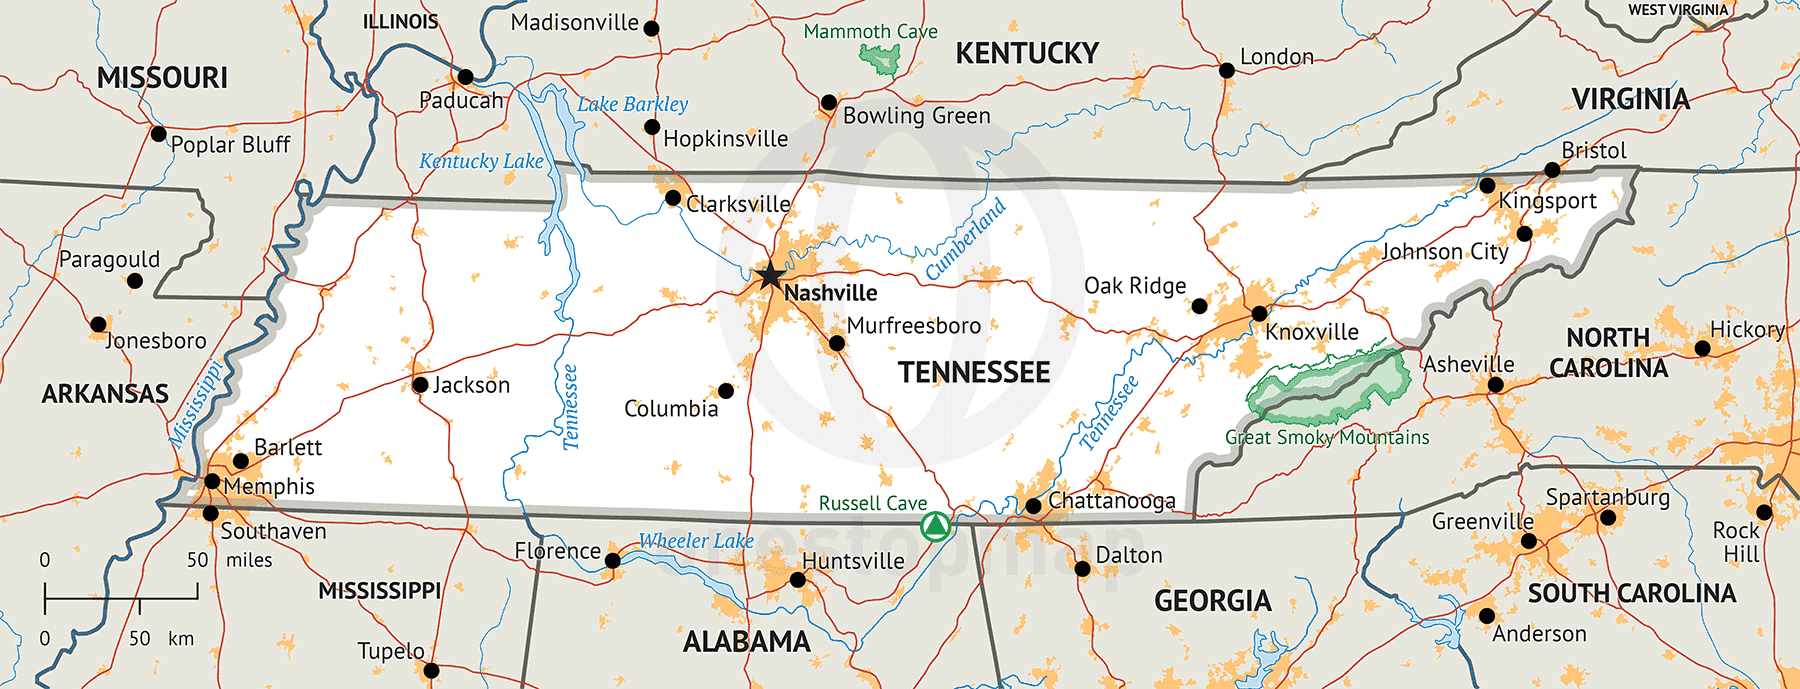 Stock vector map of Tennessee